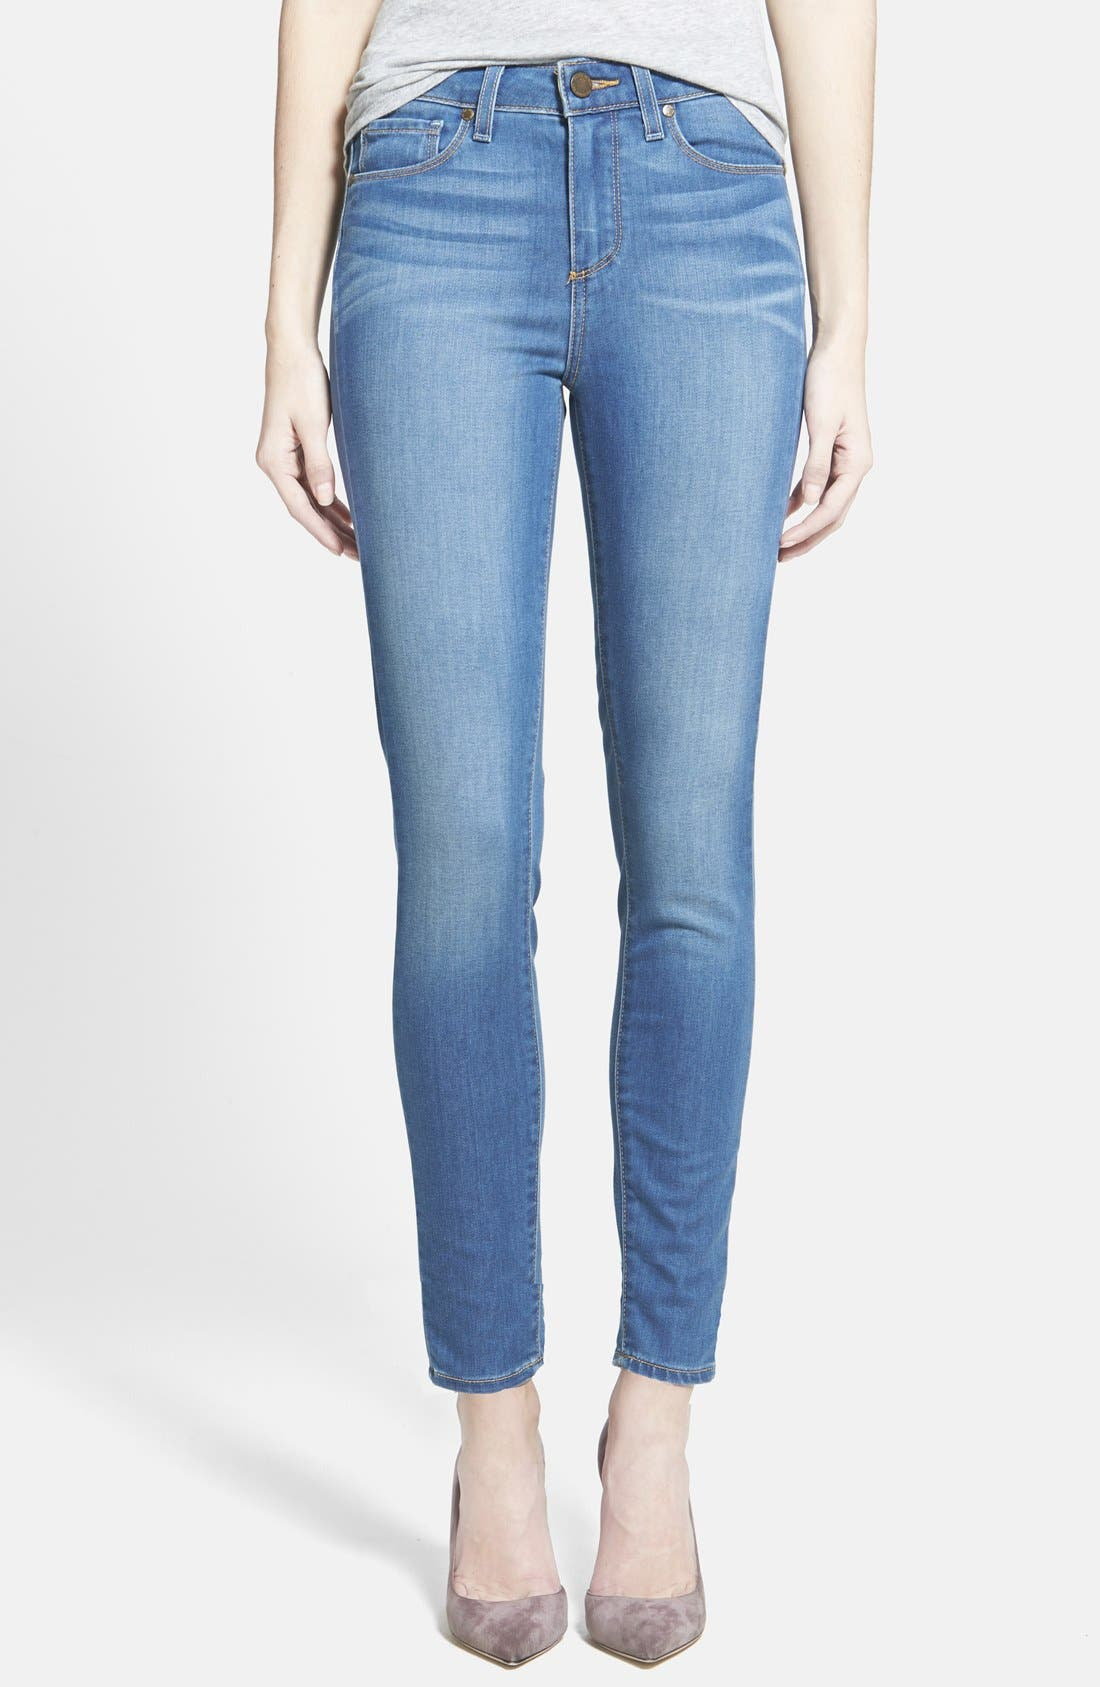 Alternate Image 1 Selected - Paige Denim 'Hoxton' Skinny Ankle Jeans (Halstead Blue)